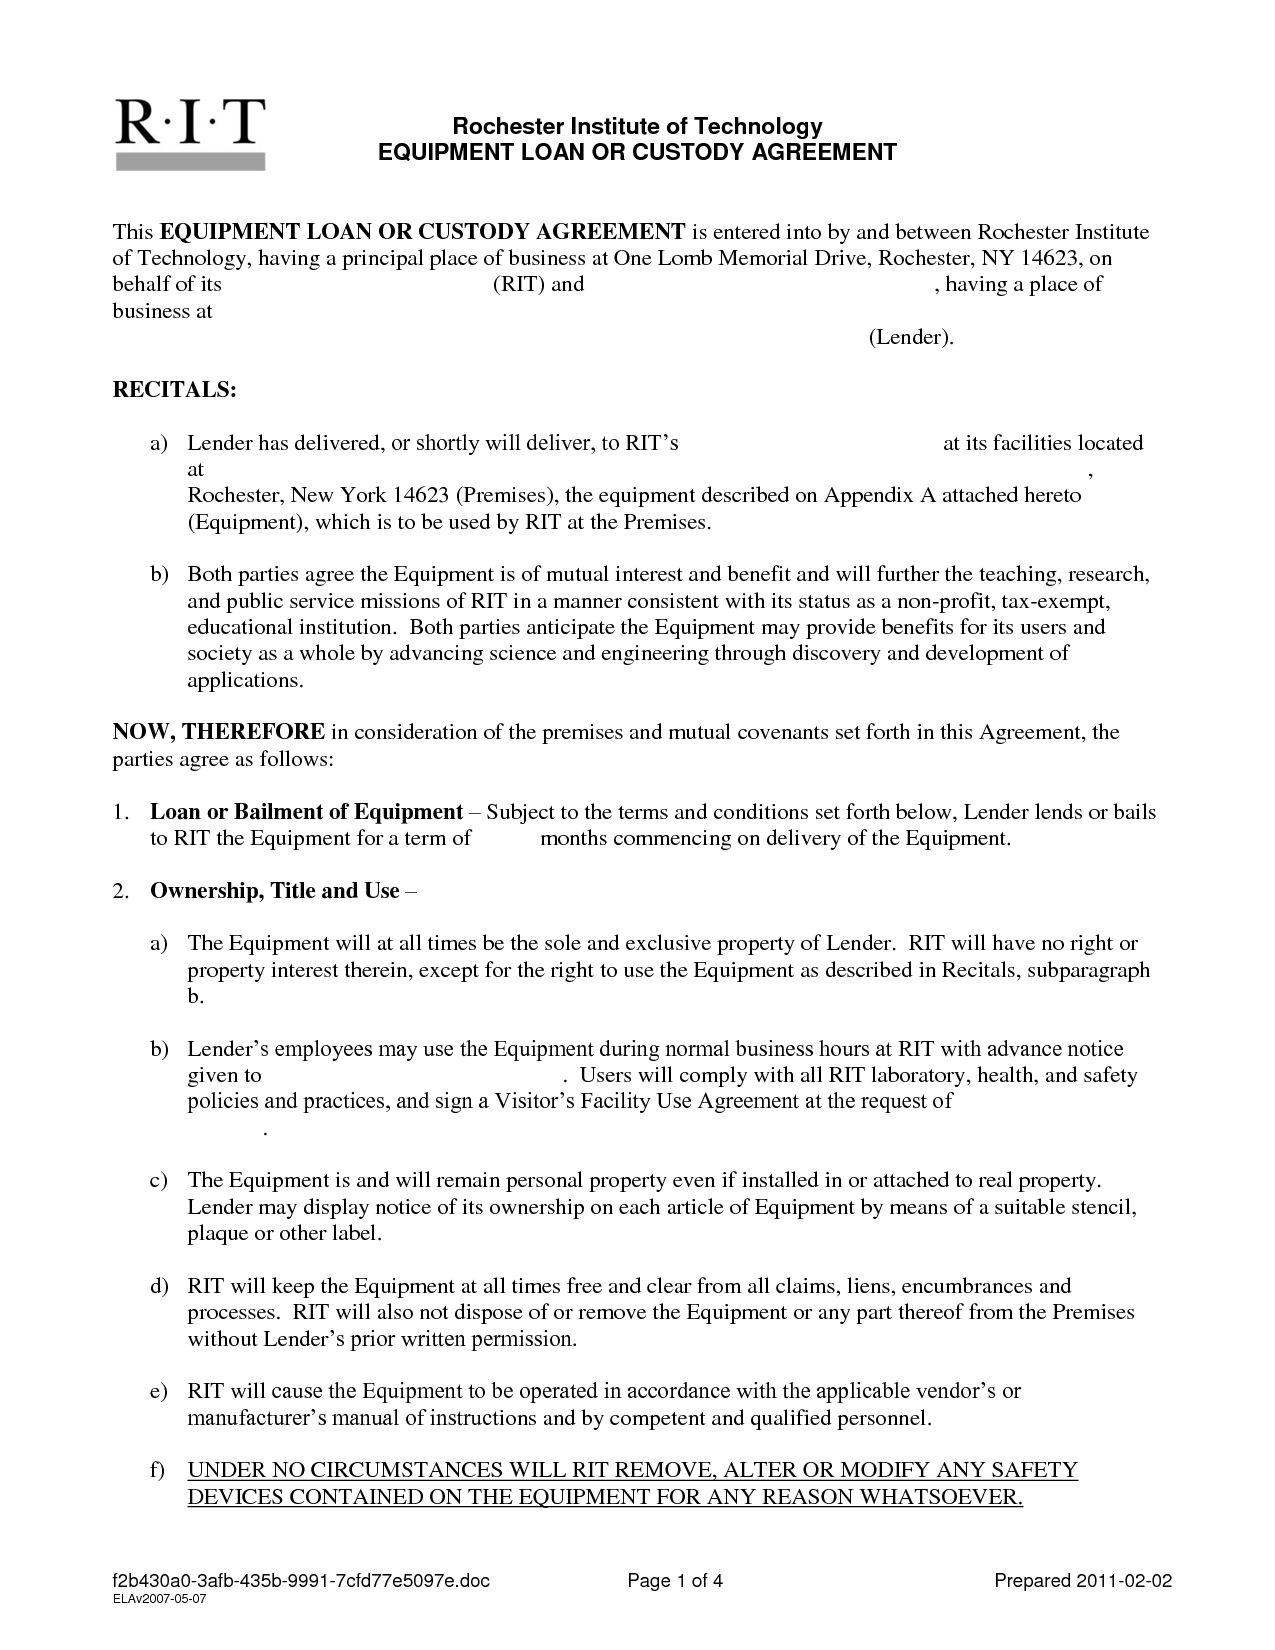 Free Simple Personal Loan Agreement Template 100 Bad For Corporate Credit Card Agreement Template Bes In 2020 Bad Credit Car Loan Contract Template Personal Loans